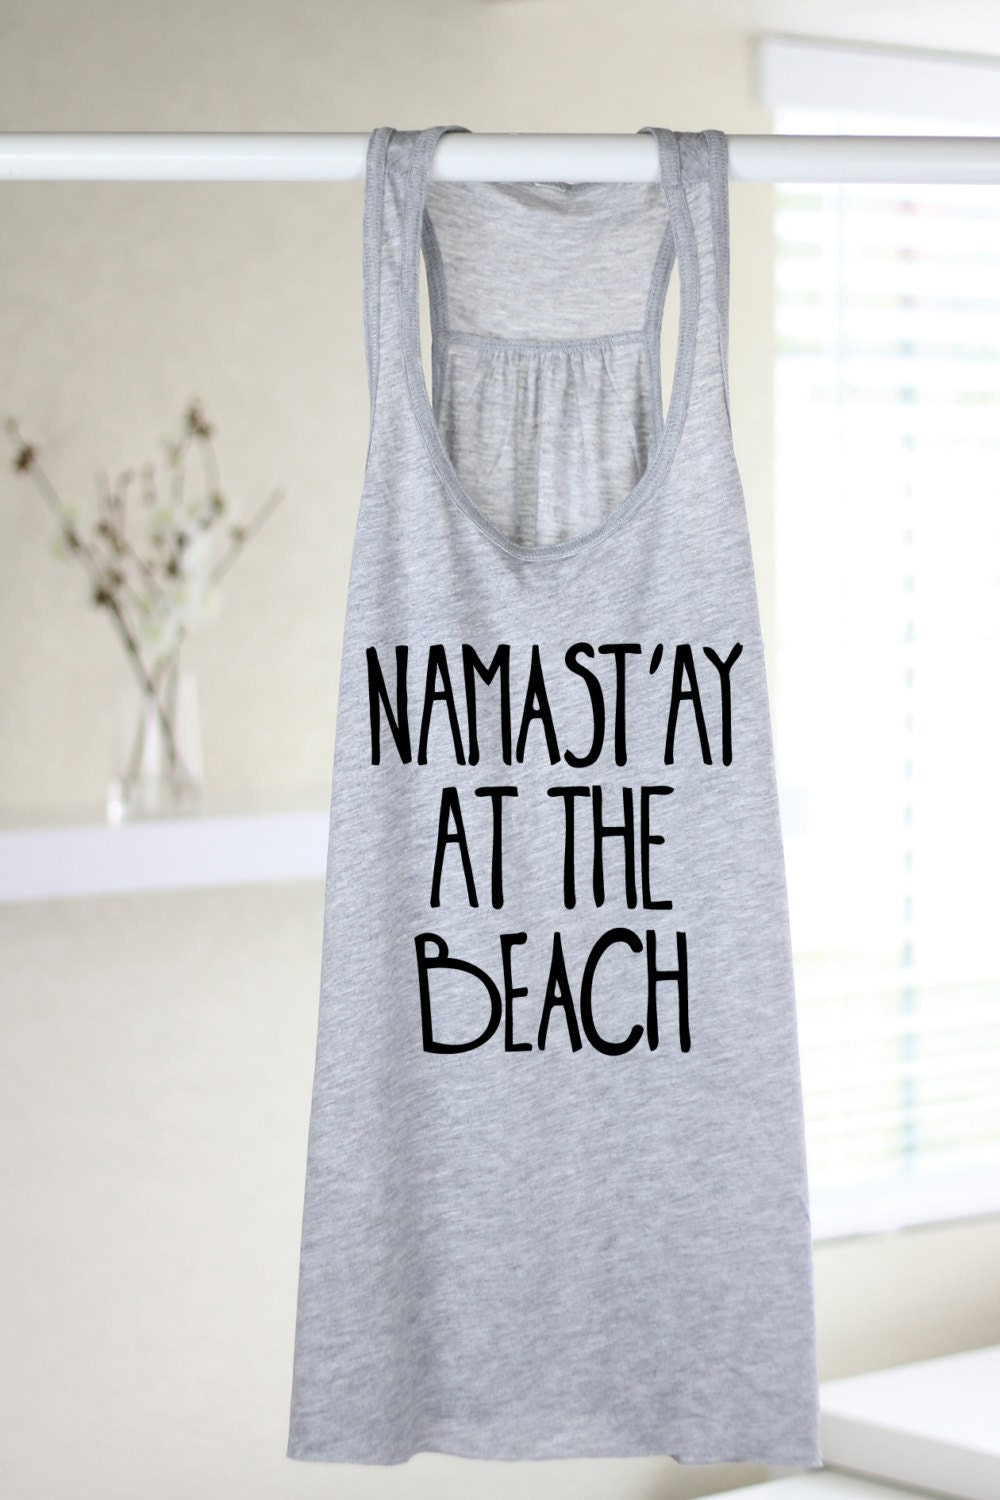 Namast'ay At The Beach Tank Tops With Sayings Yoga Top. Marriage Quotes Wishes. Me Before You Quotes Jojo Moyes. Deep Quotes About Graduation. Love Quotes Vietnamese. Tumblr Quotes You Changed. Beach Lifeguard Quotes. Quotes Deep Love Someone. Picture Quotes About Hope And Strength